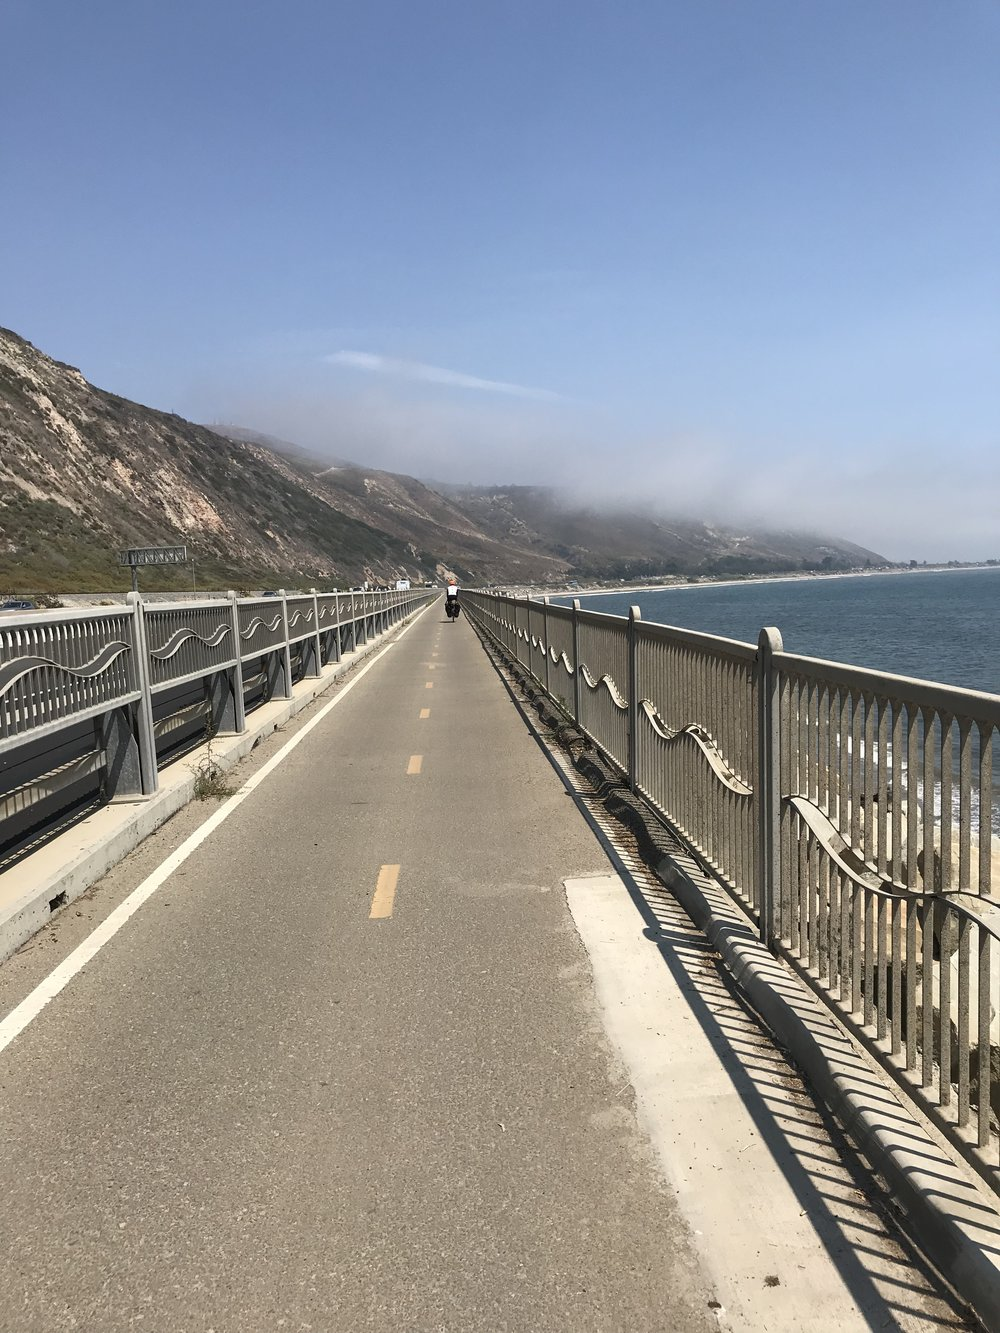 Bike path leading into Ventura.